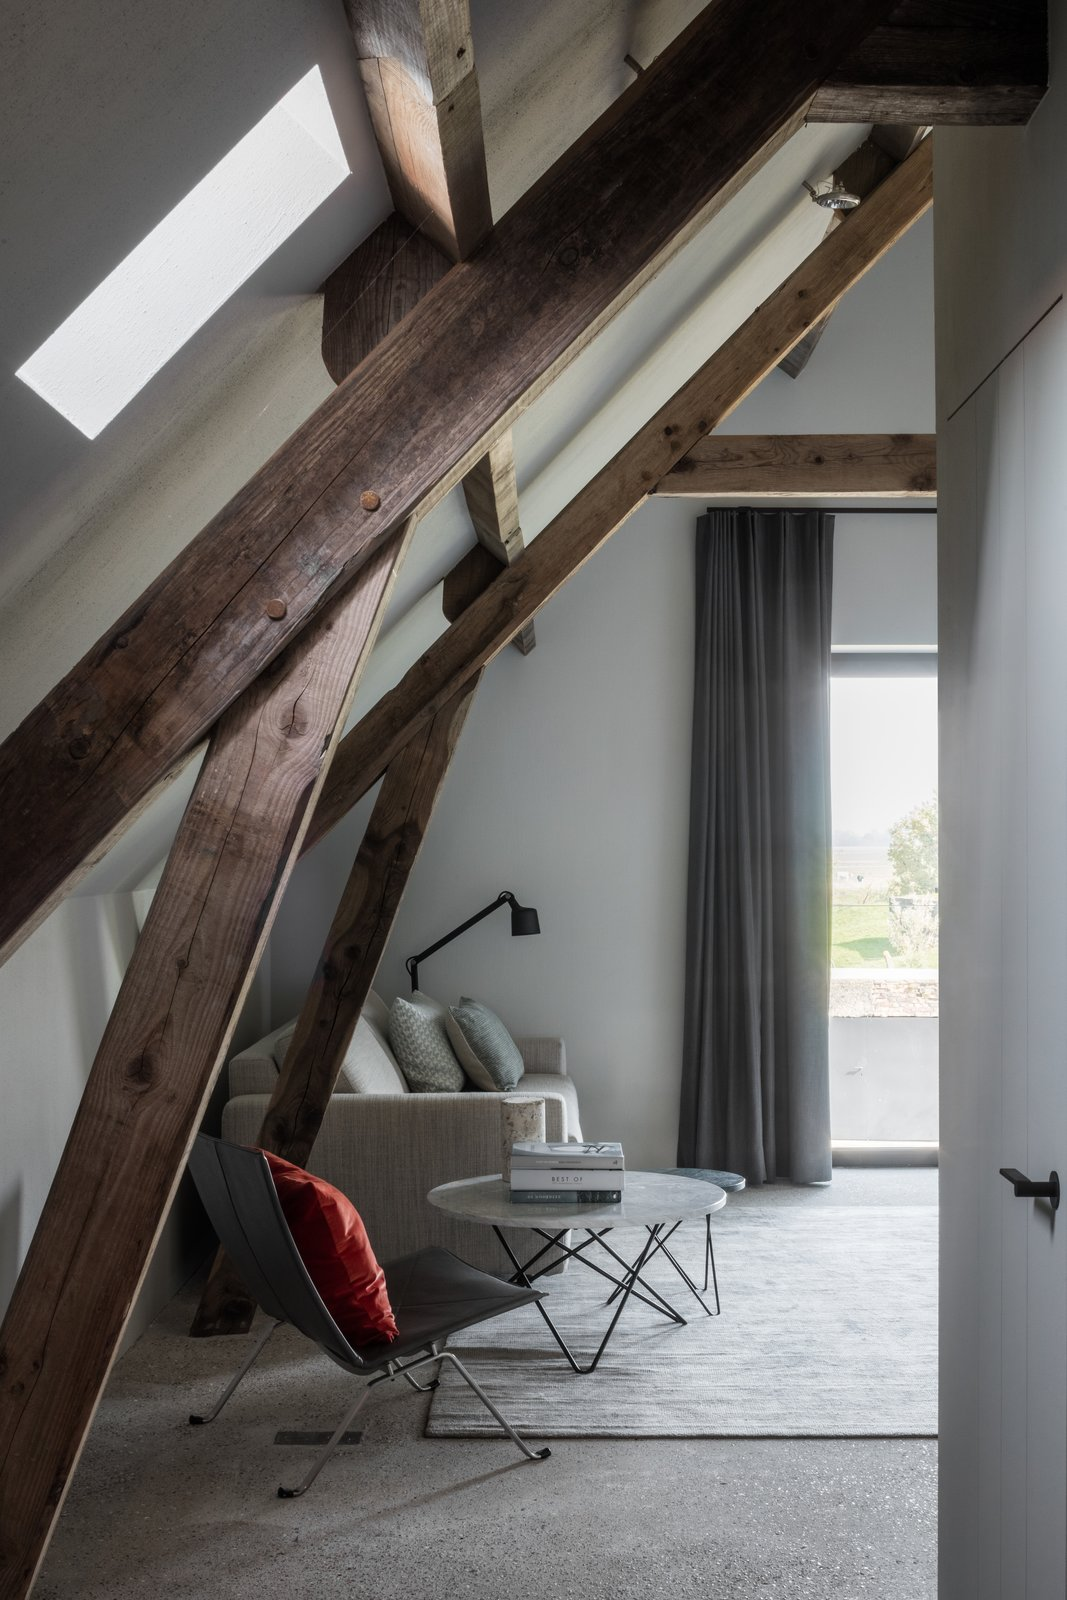 Bedroom, Concrete, Floor, Chair, and Rug Rough, scrubbed concrete and rounder plastering contrast with the restored timber roof beautifully.      Best Bedroom Photos from An Old Belgian Fortress Breathes New Life as a Charming B&B